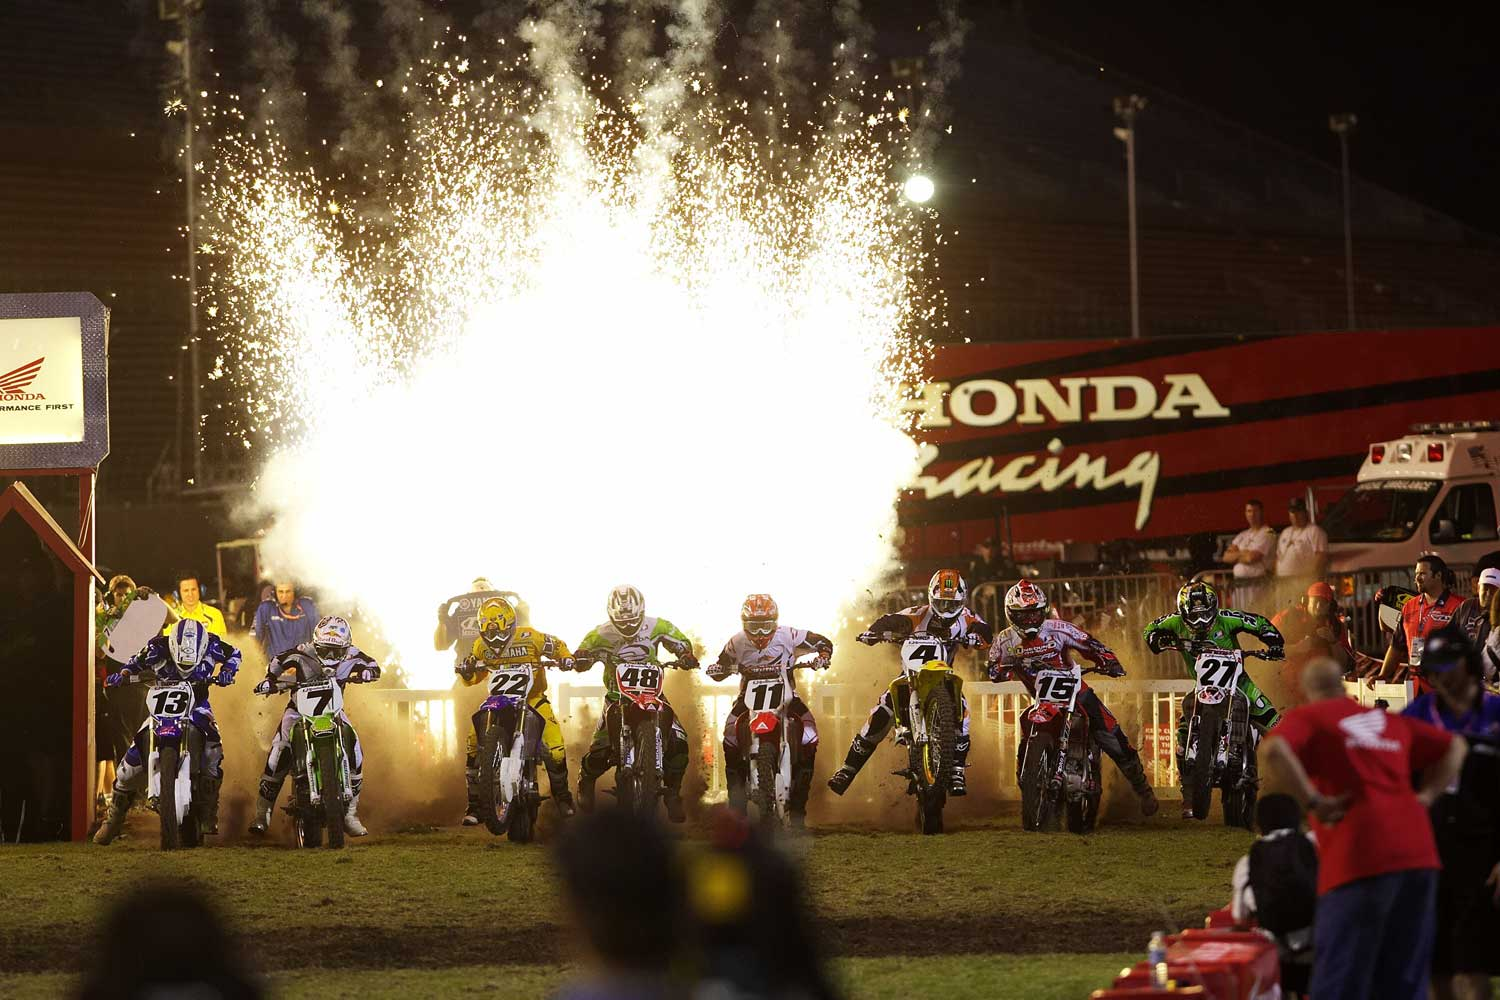 James 'Bubba' Stewart, Ricky Carmichael and other riders get ready at the starting line in Daytona Beach, FL.